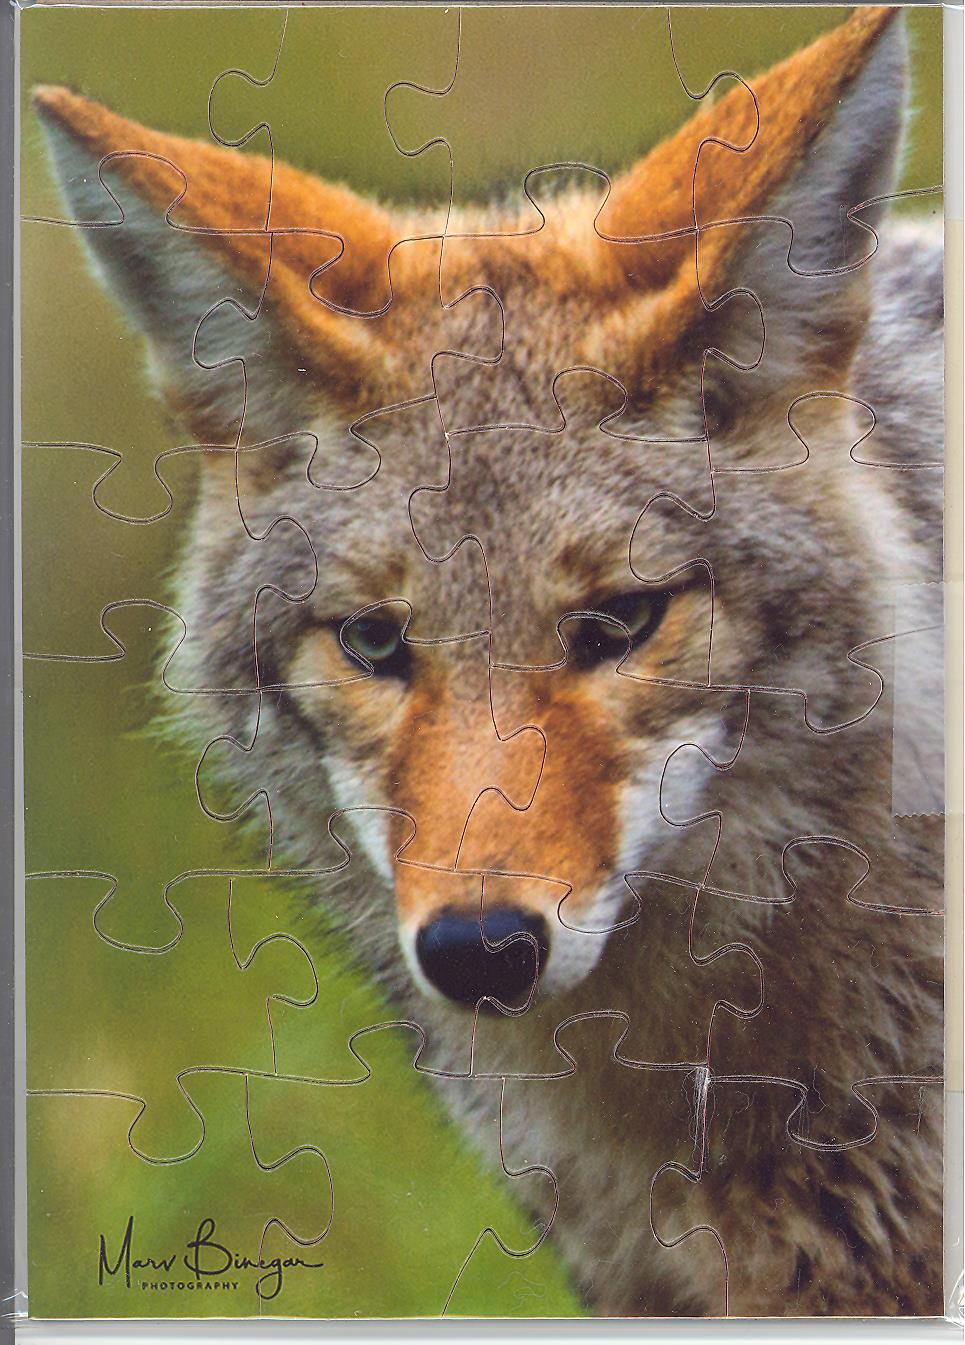 COYOTE Puzzle Postcard by art photographer Marv Binegar